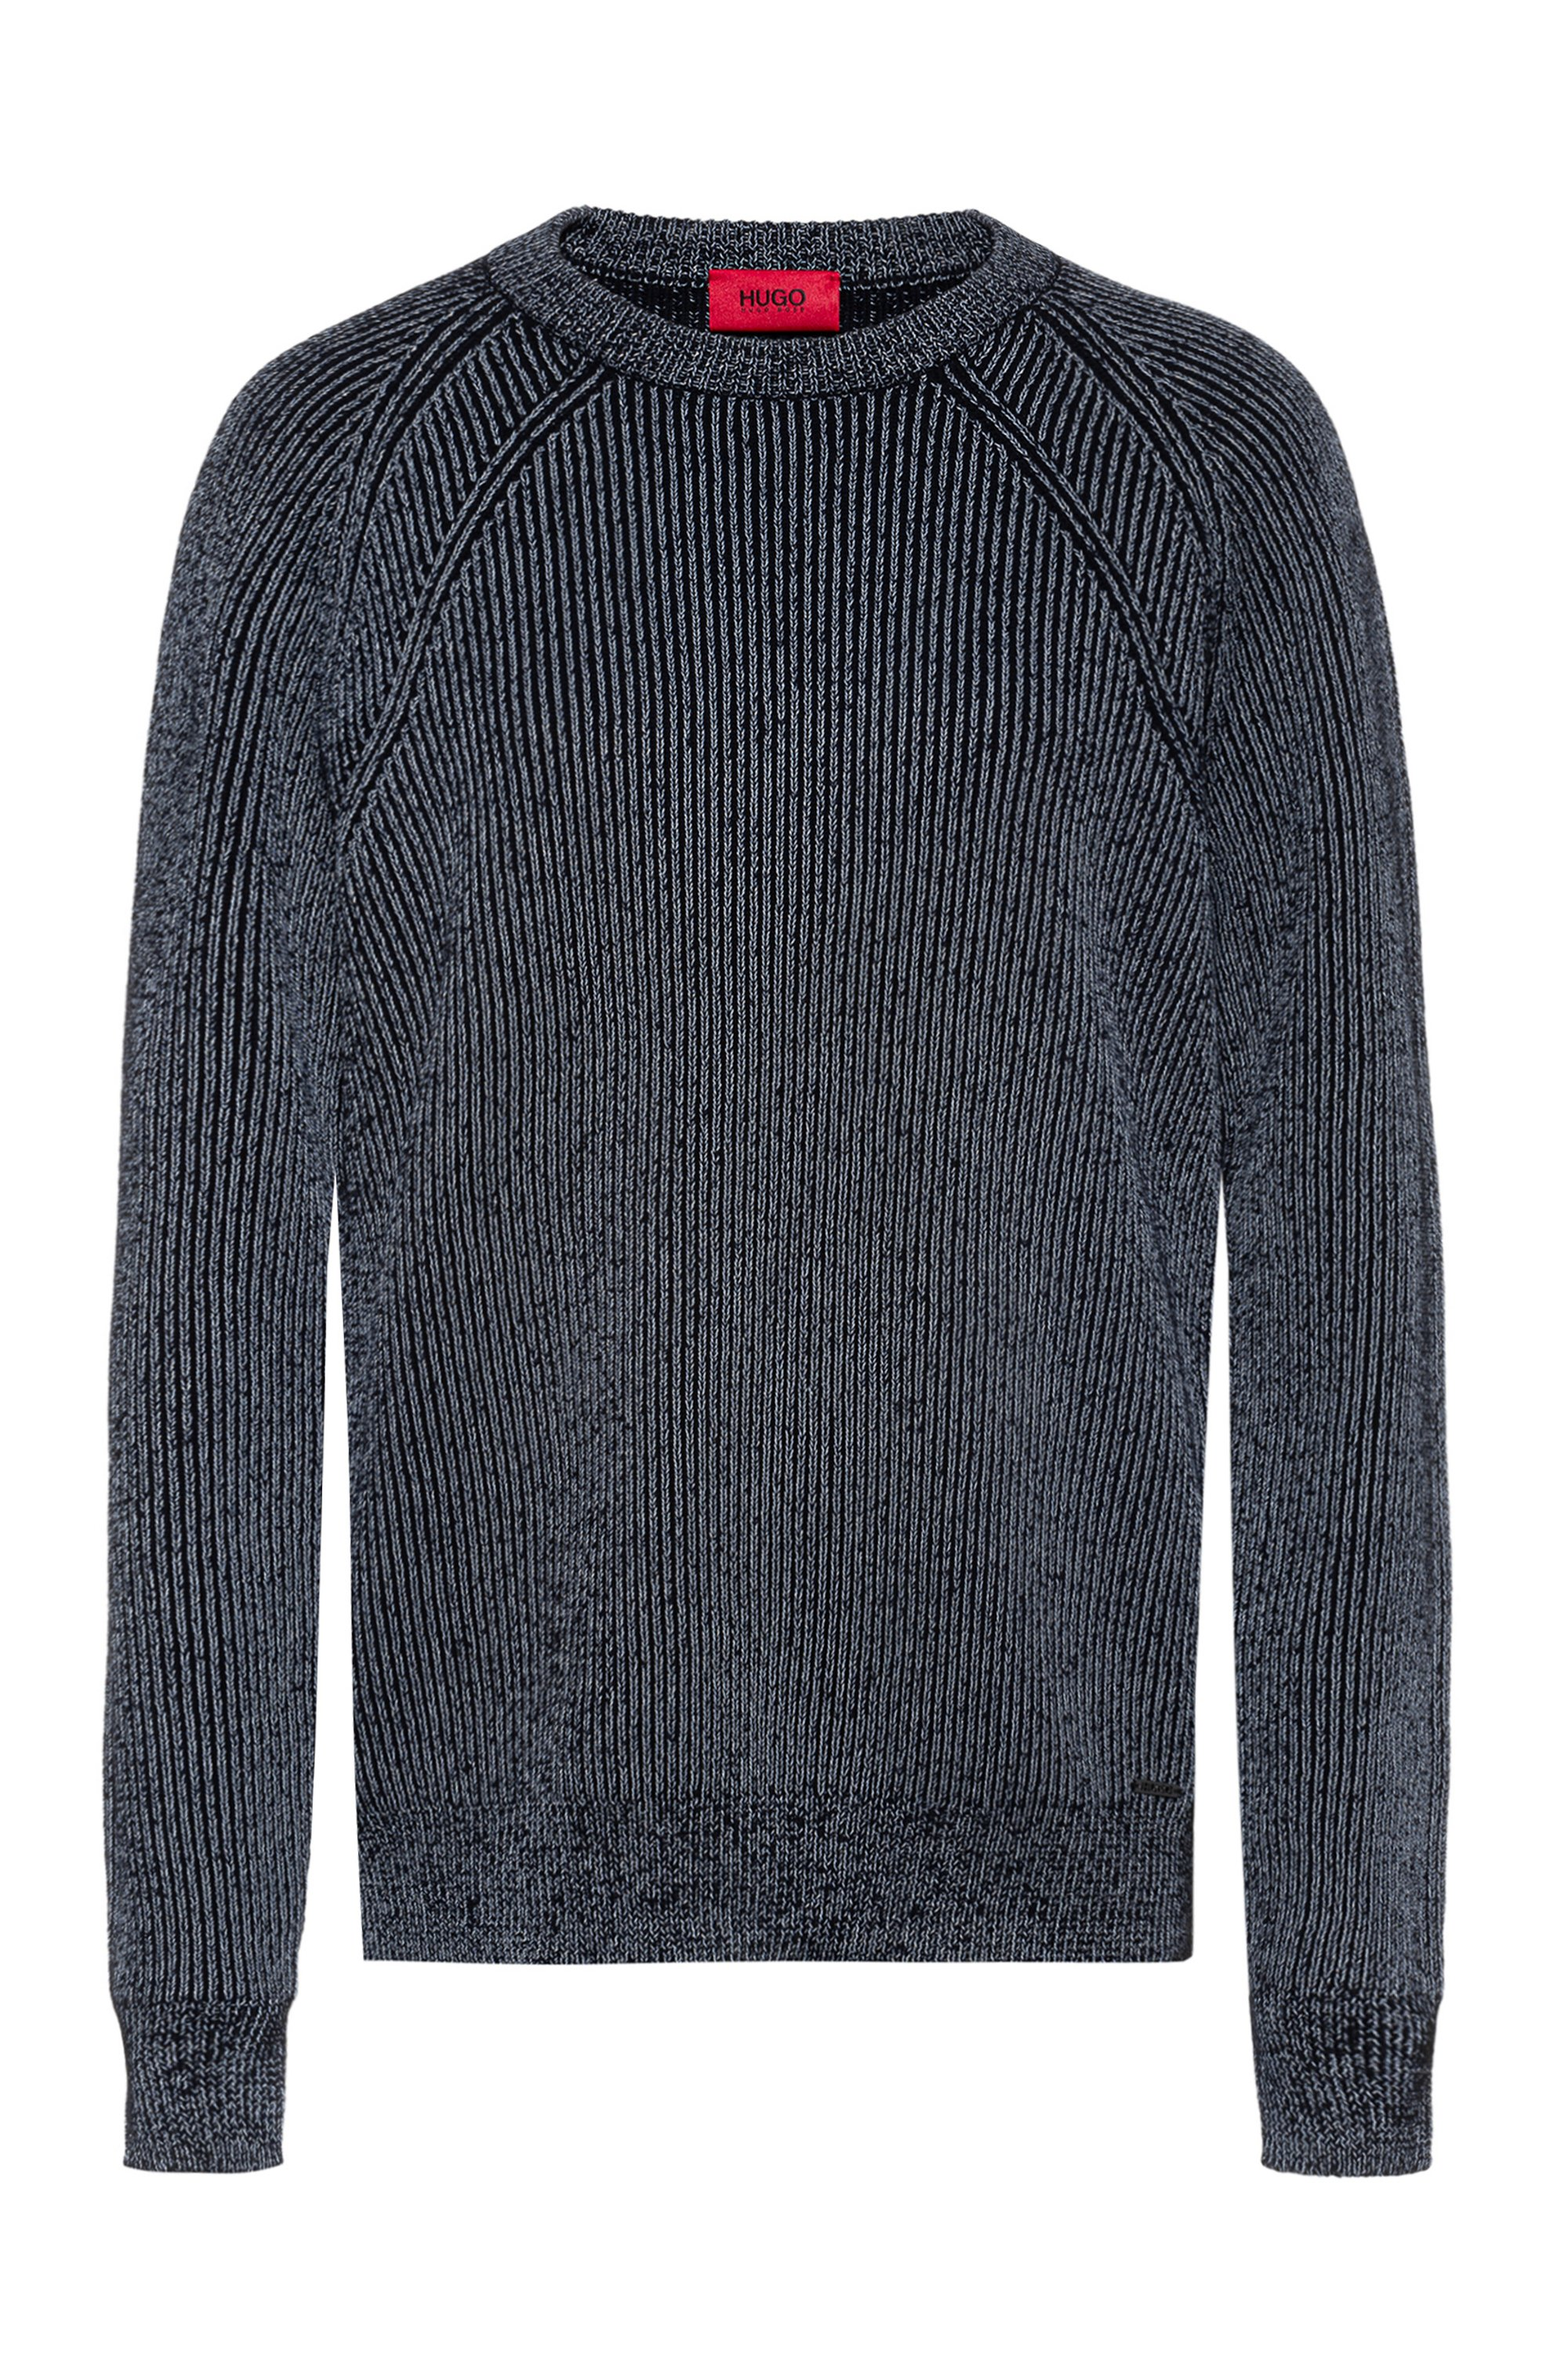 Crew-neck ribbed sweater in reflective cotton-blend yarn, Silver